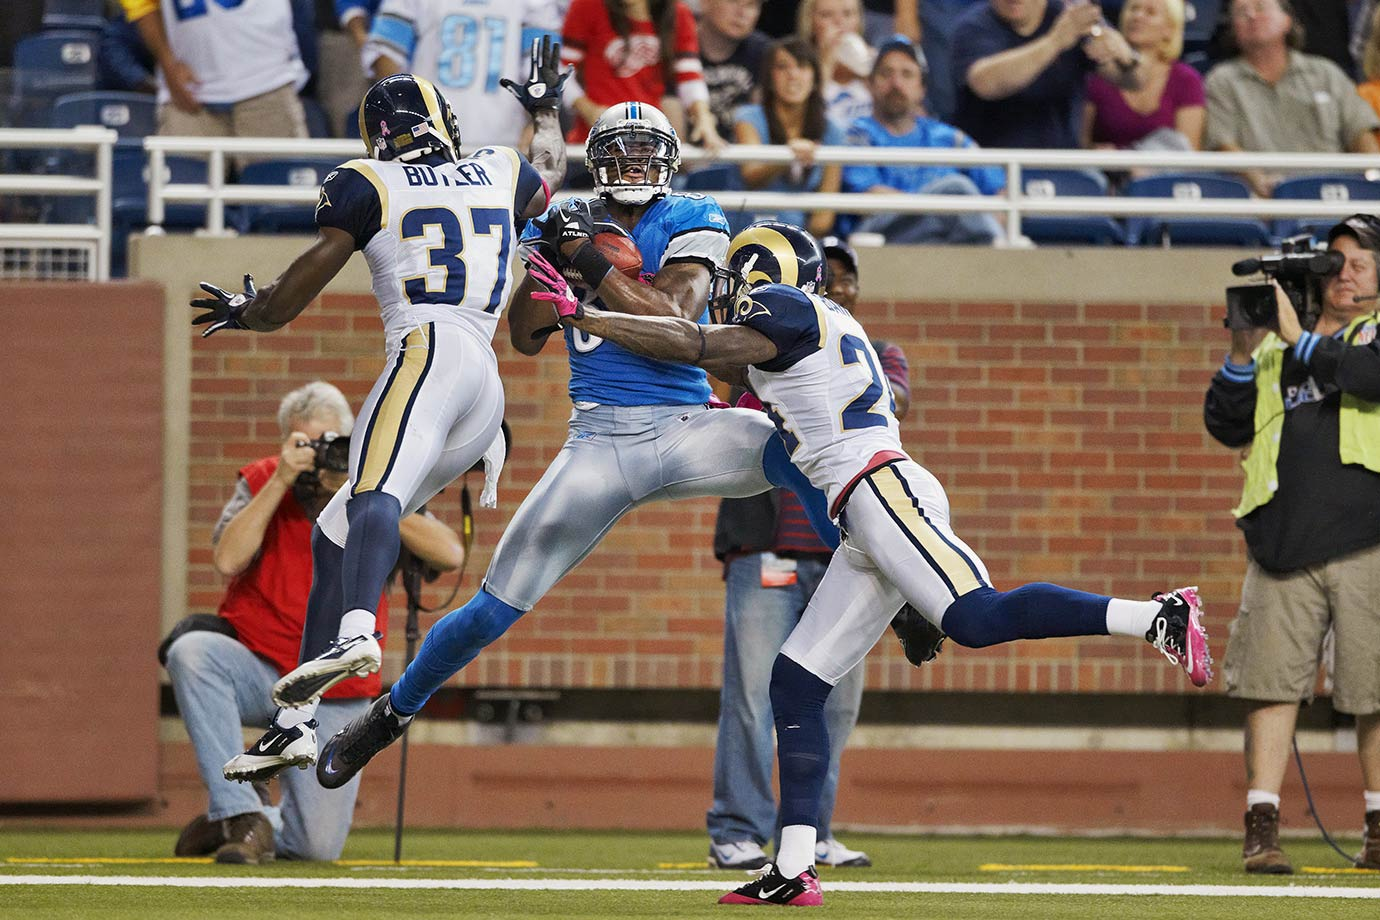 Oct. 10, 2010 — Detroit Lions vs. St. Louis Rams